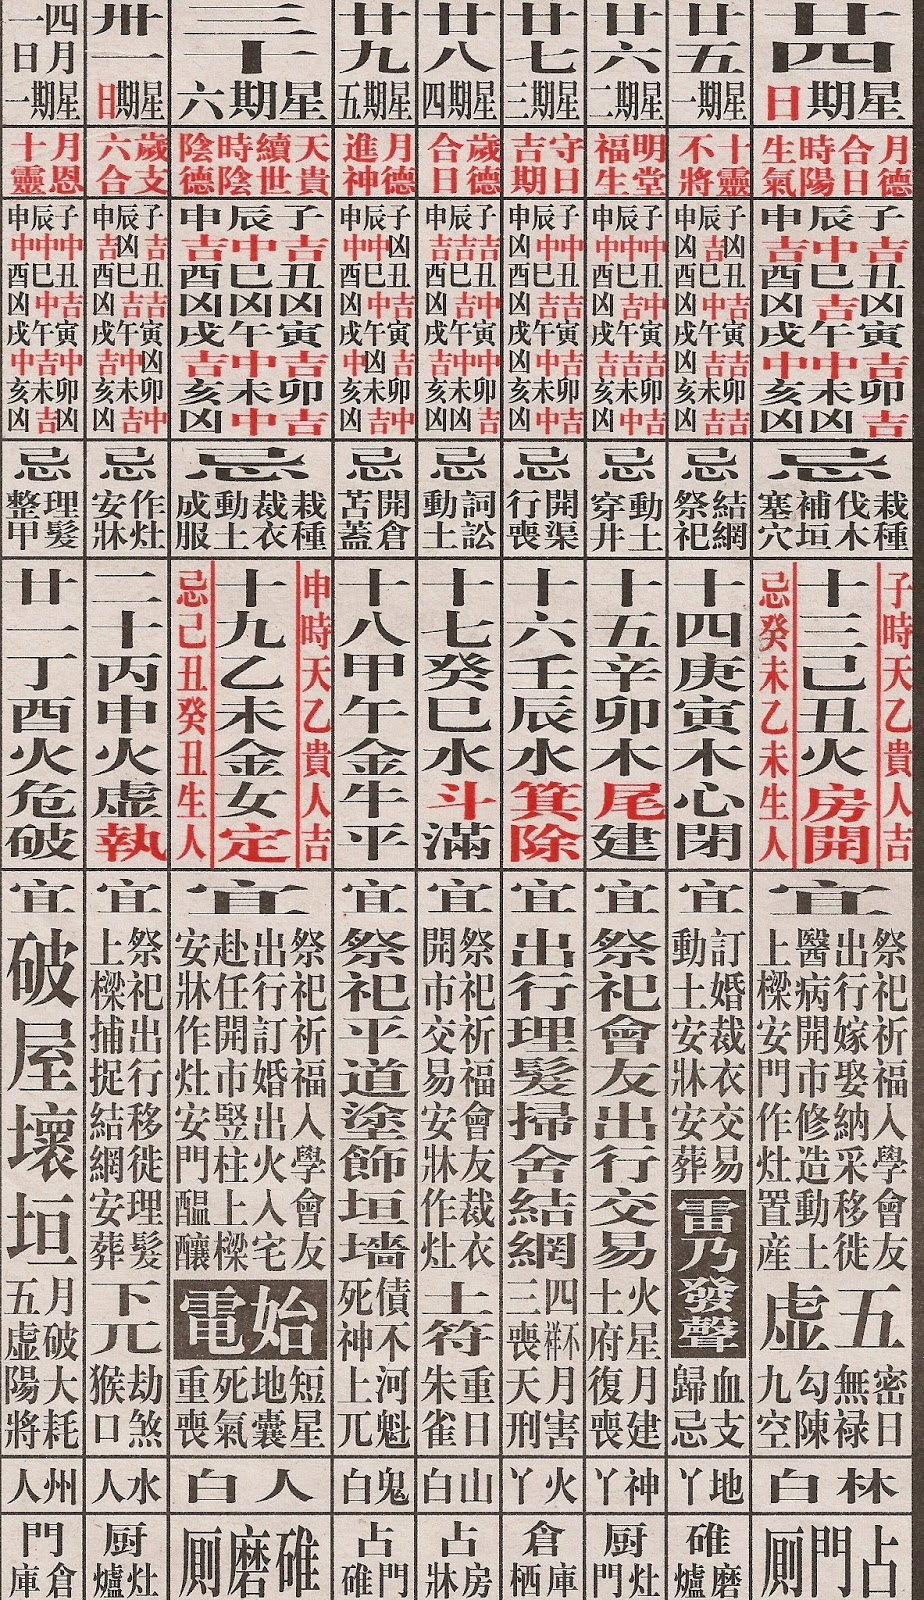 Chinese Calendar Today : And square series calendars almanacs today s calendar date